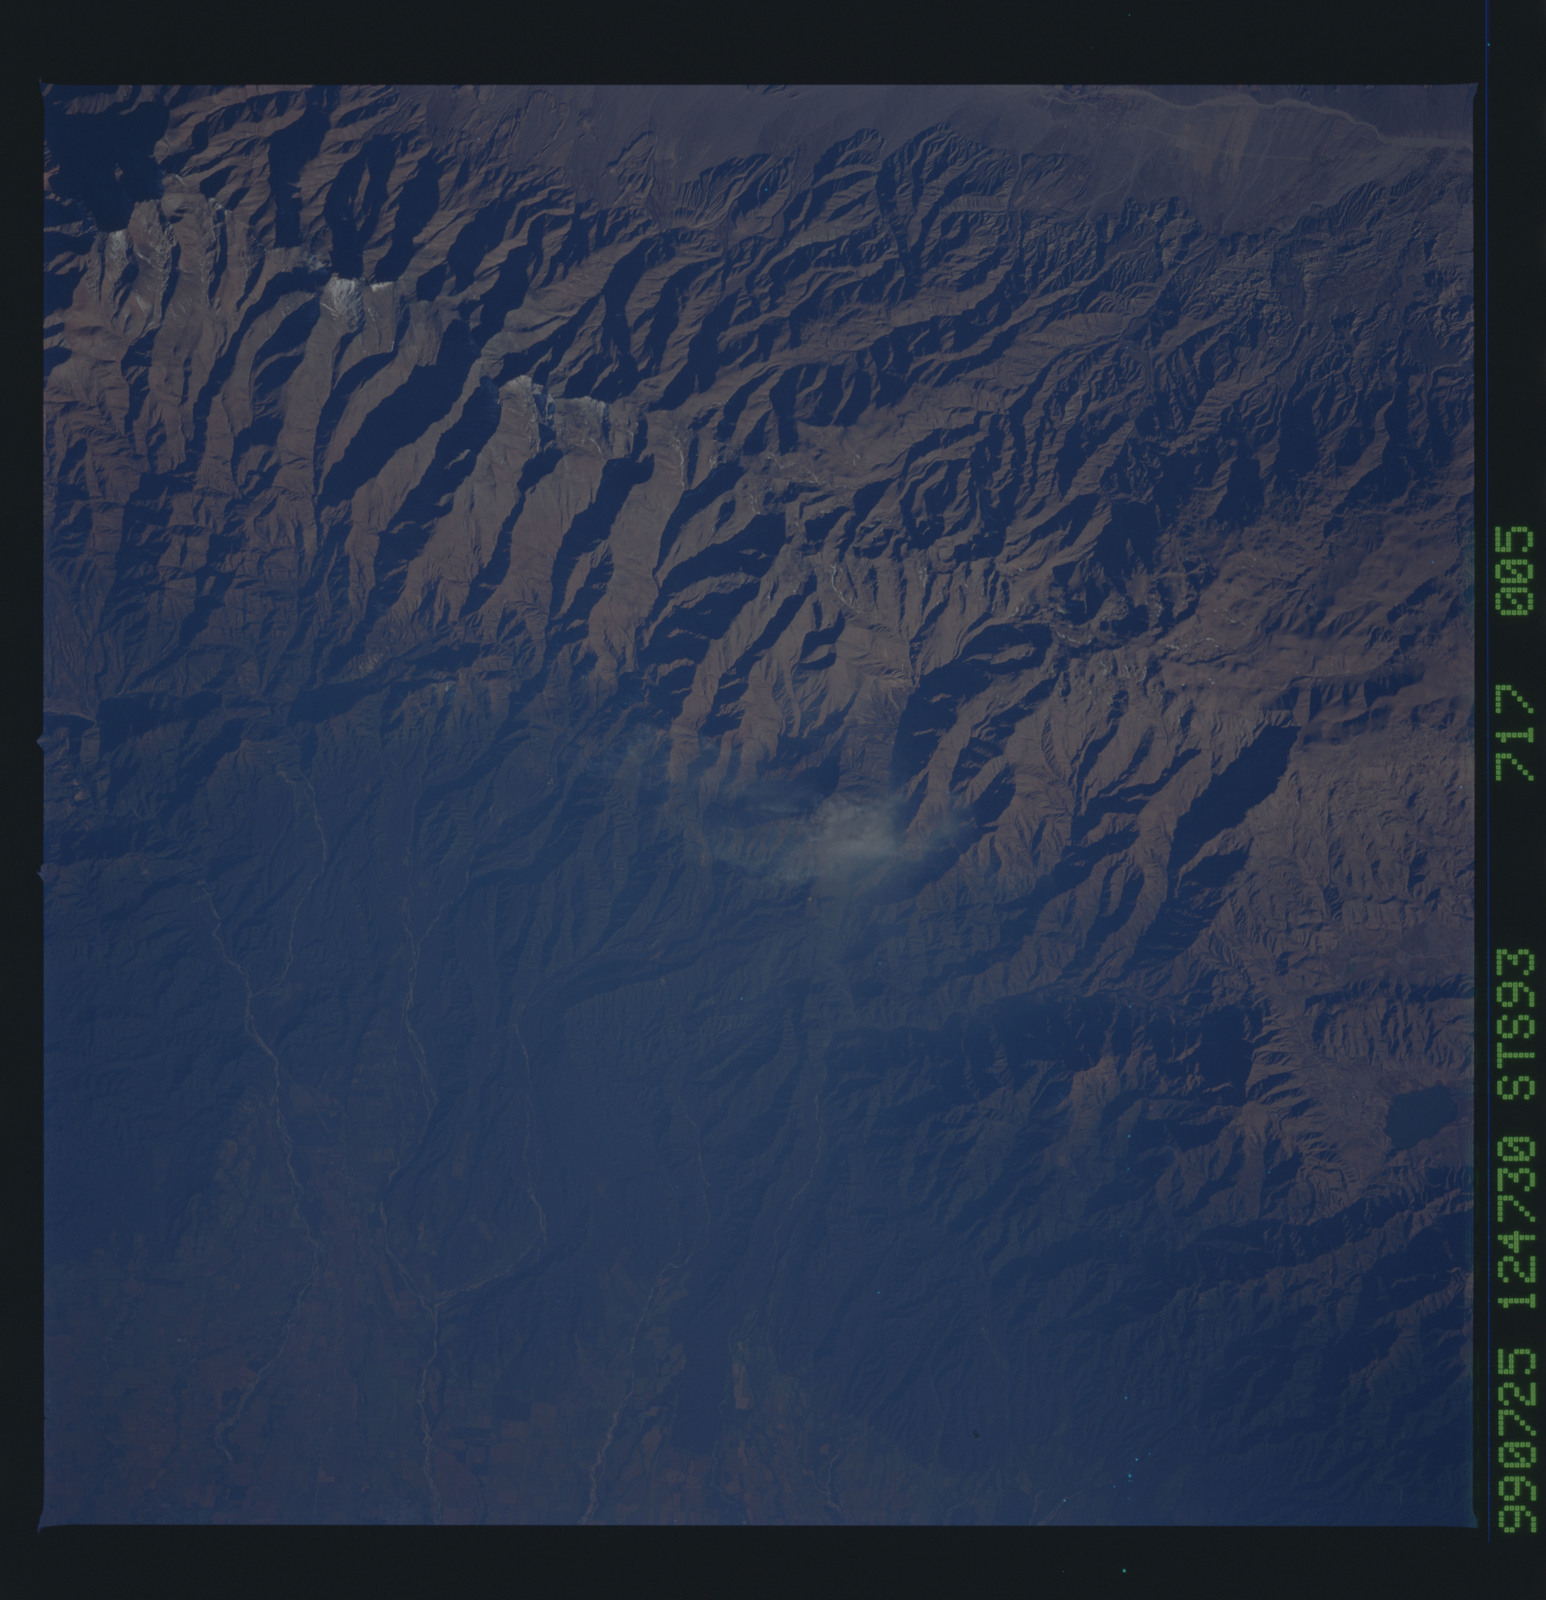 STS093-717-005 - STS-093 - Earth observations of the Andes Mts. taken from Columbia during STS-93 mission